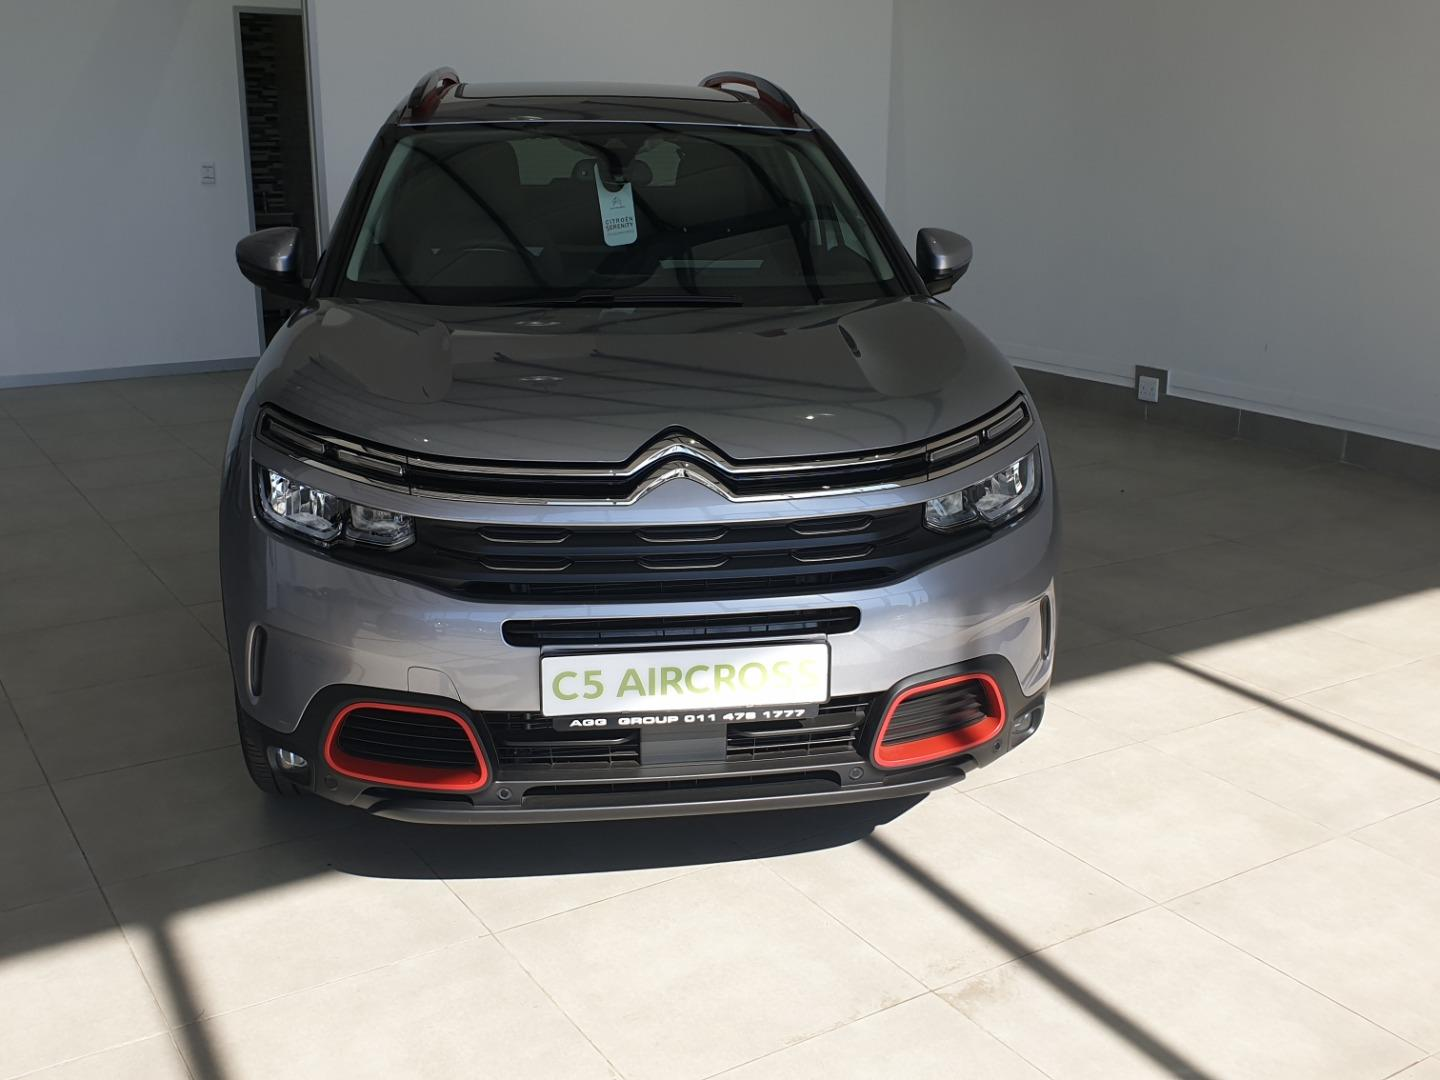 2021 Citroen C5 Aircross 1.6 Thp Turbo Shine At